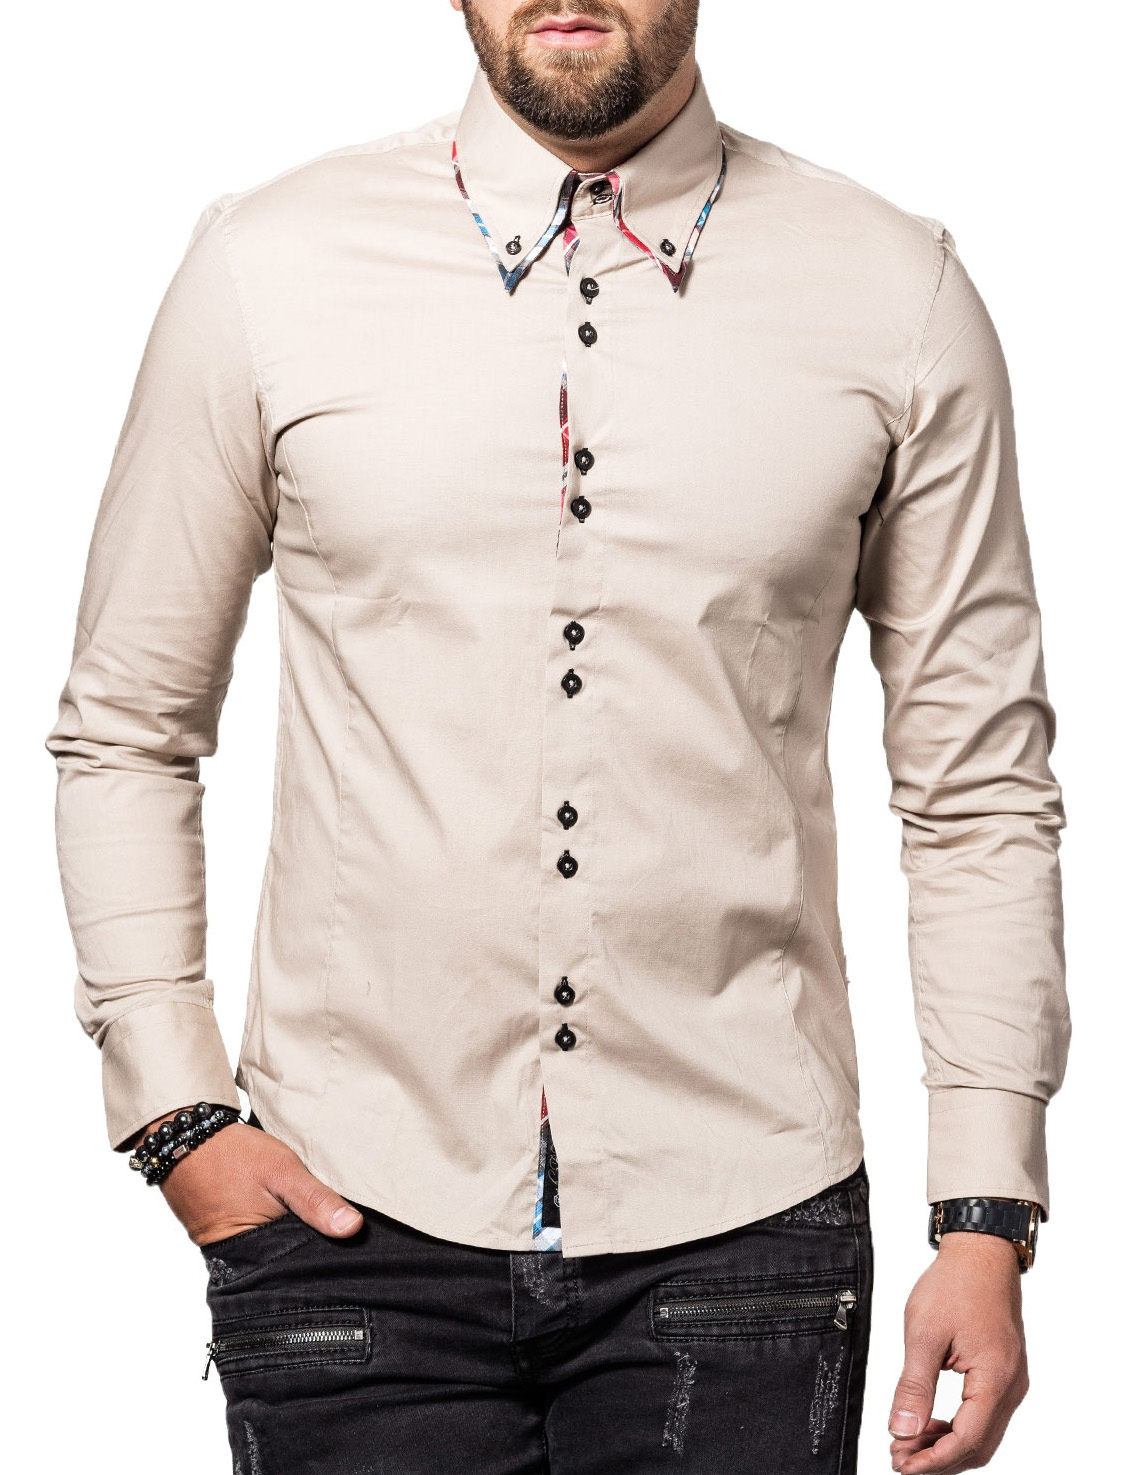 Homme Homme Chemise Italienne Beige 110 Beige Homme Italienne 110 Chemise Chemise kiPXZu